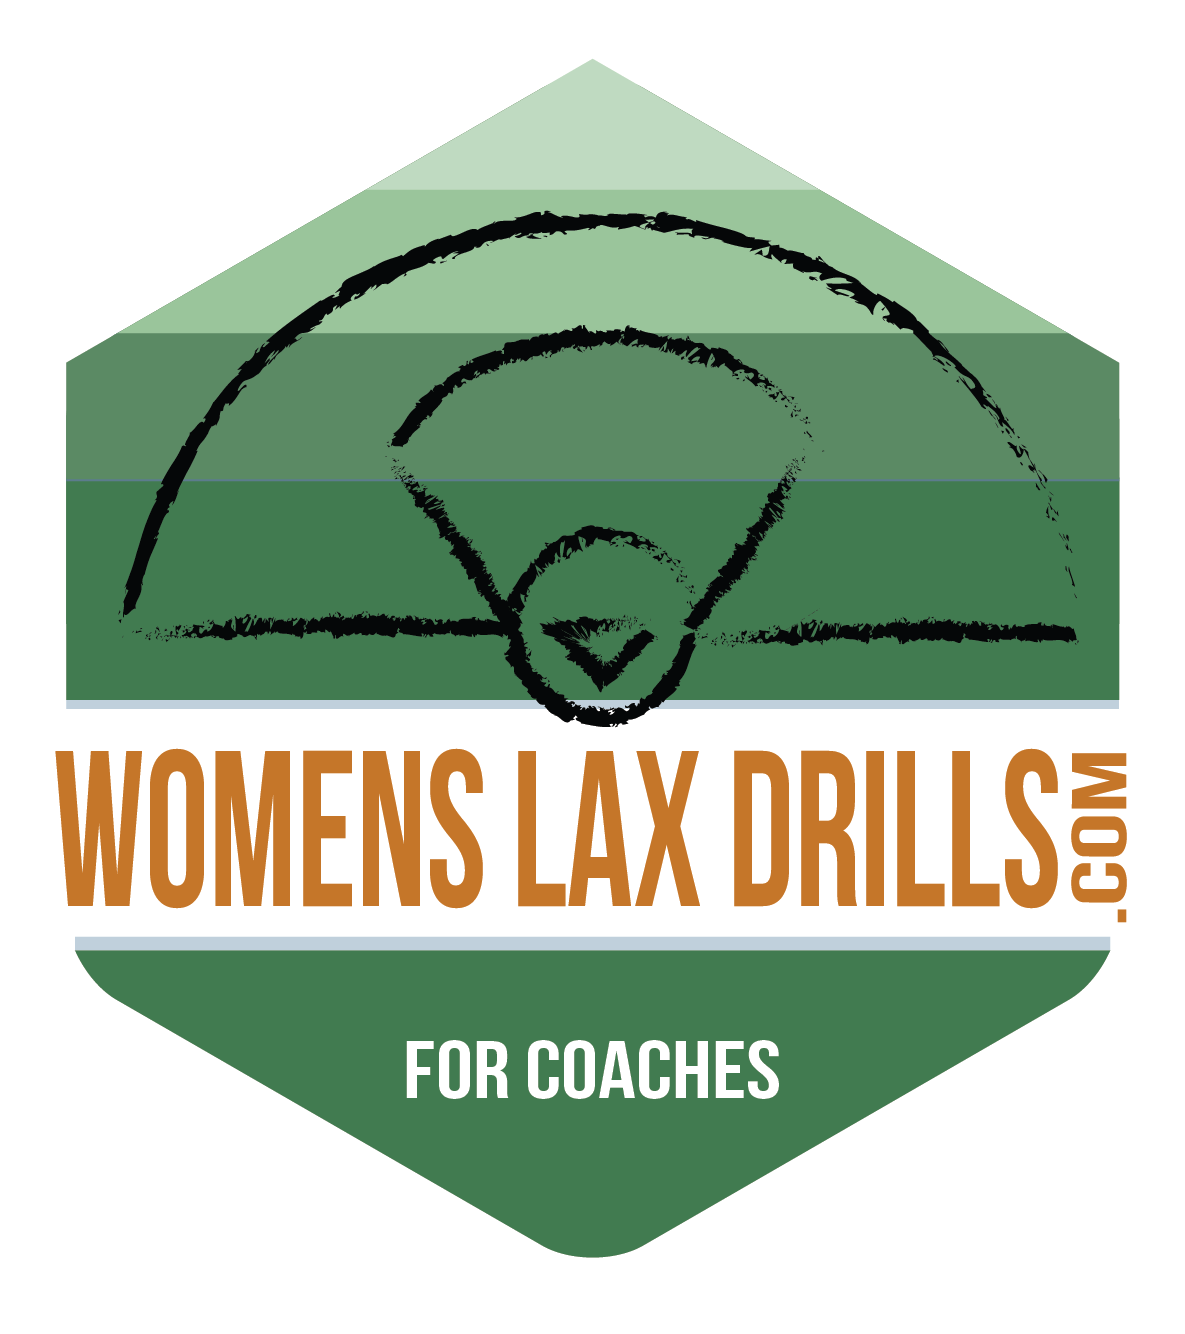 Womens Lax Drills